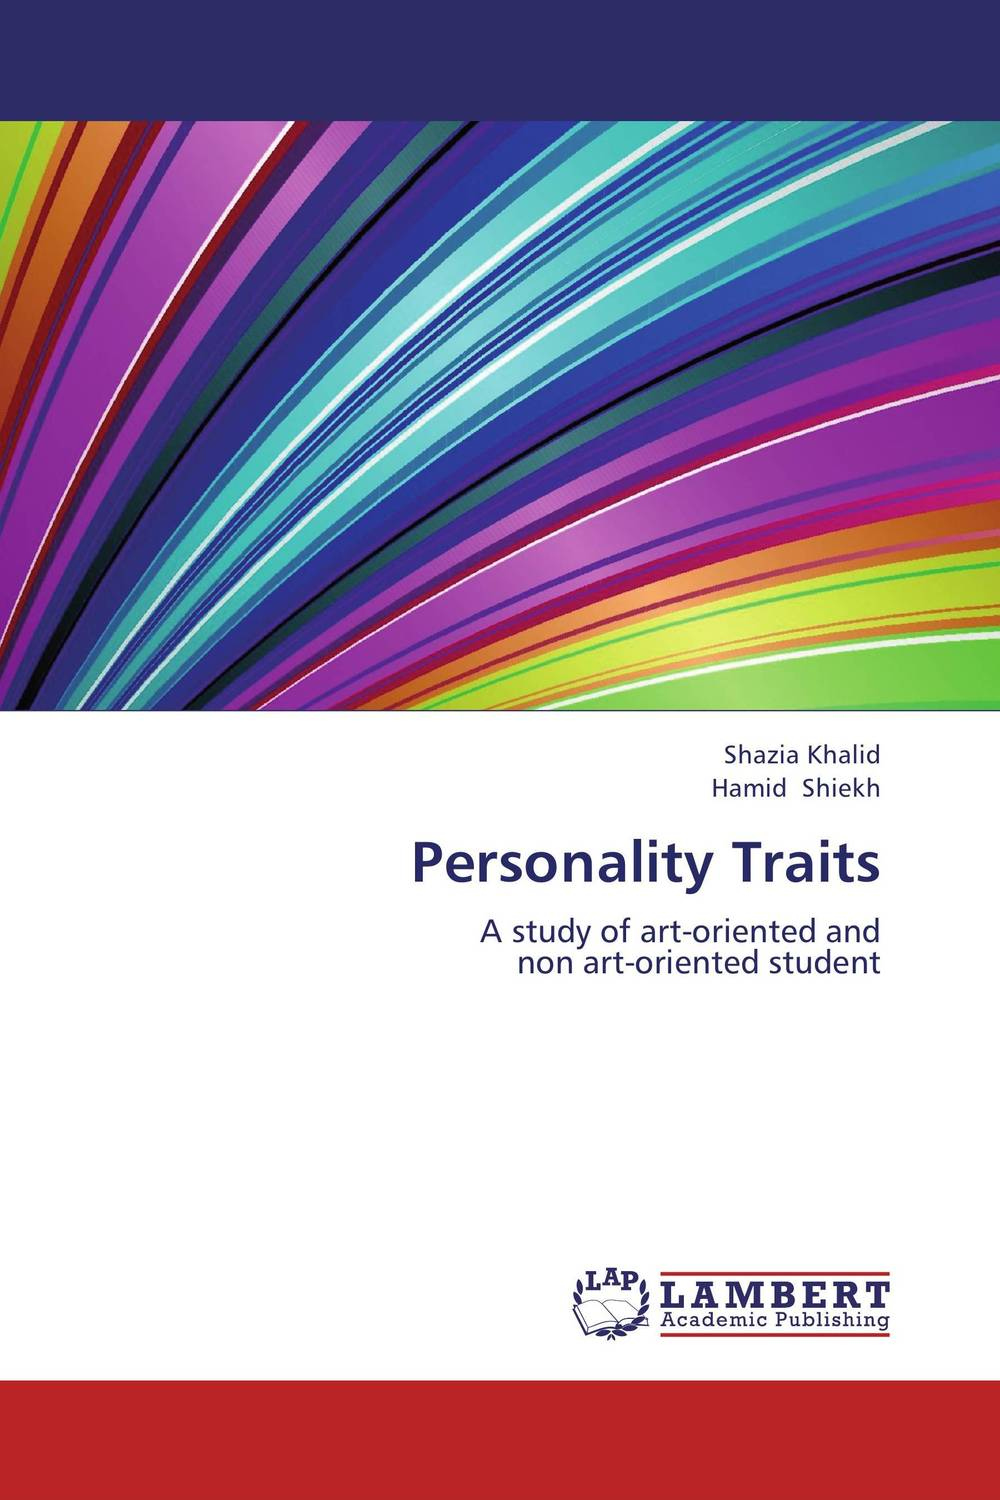 Personality Traits art projects